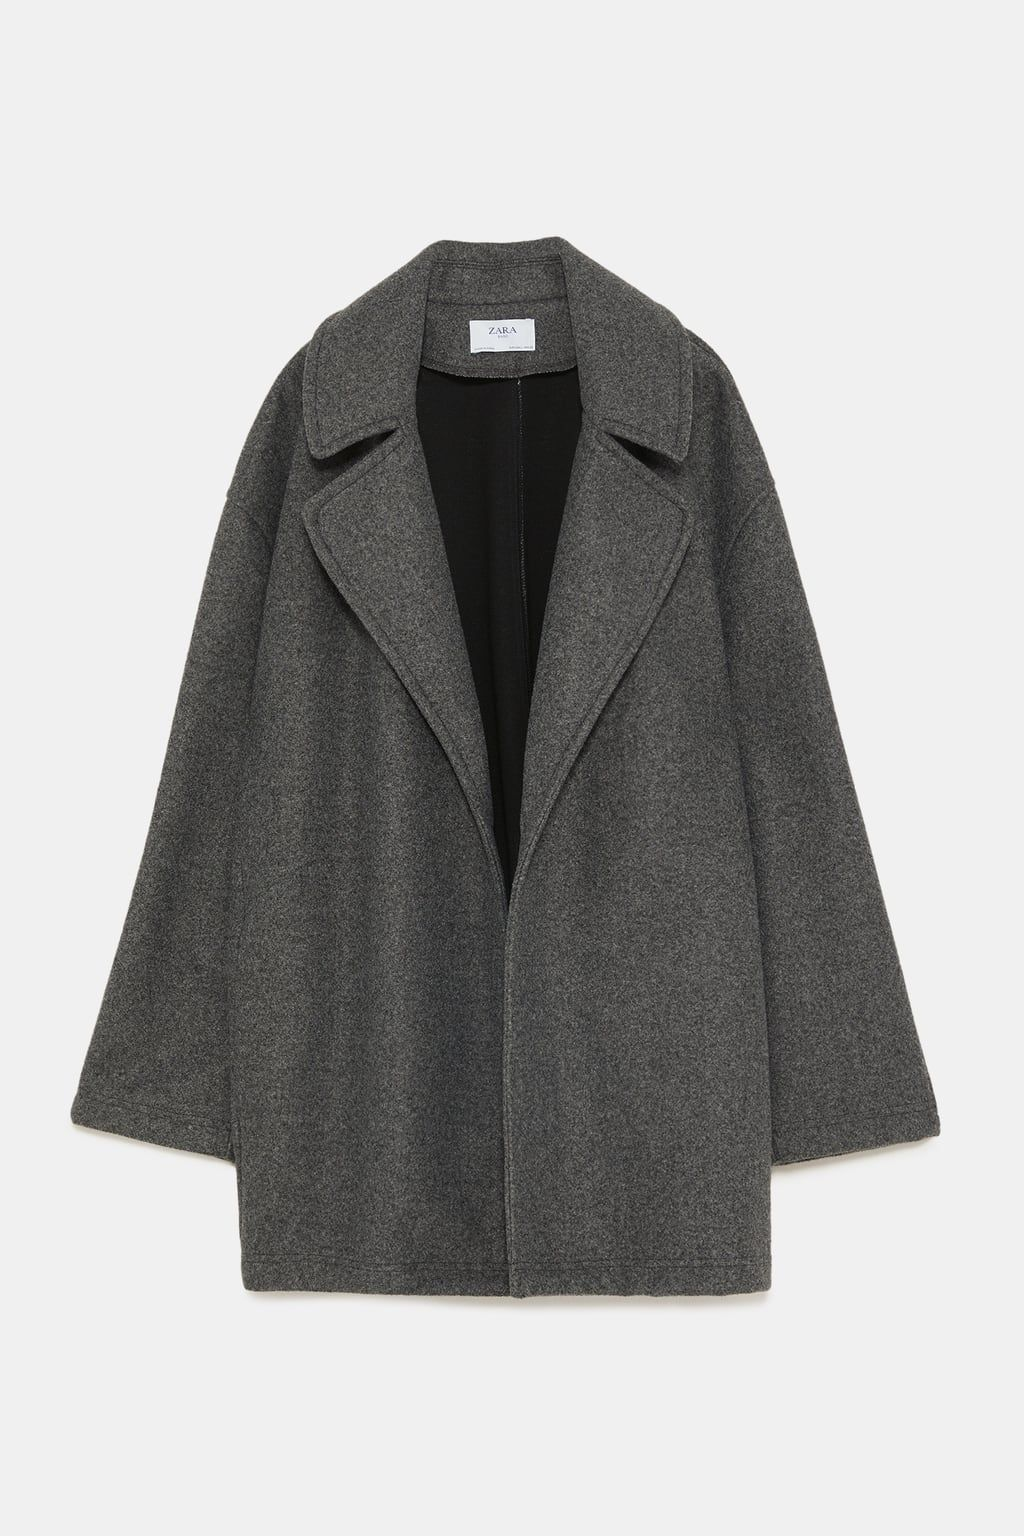 Image 8 of WIDE LAPEL COAT from Zara Zara cf65b2c159